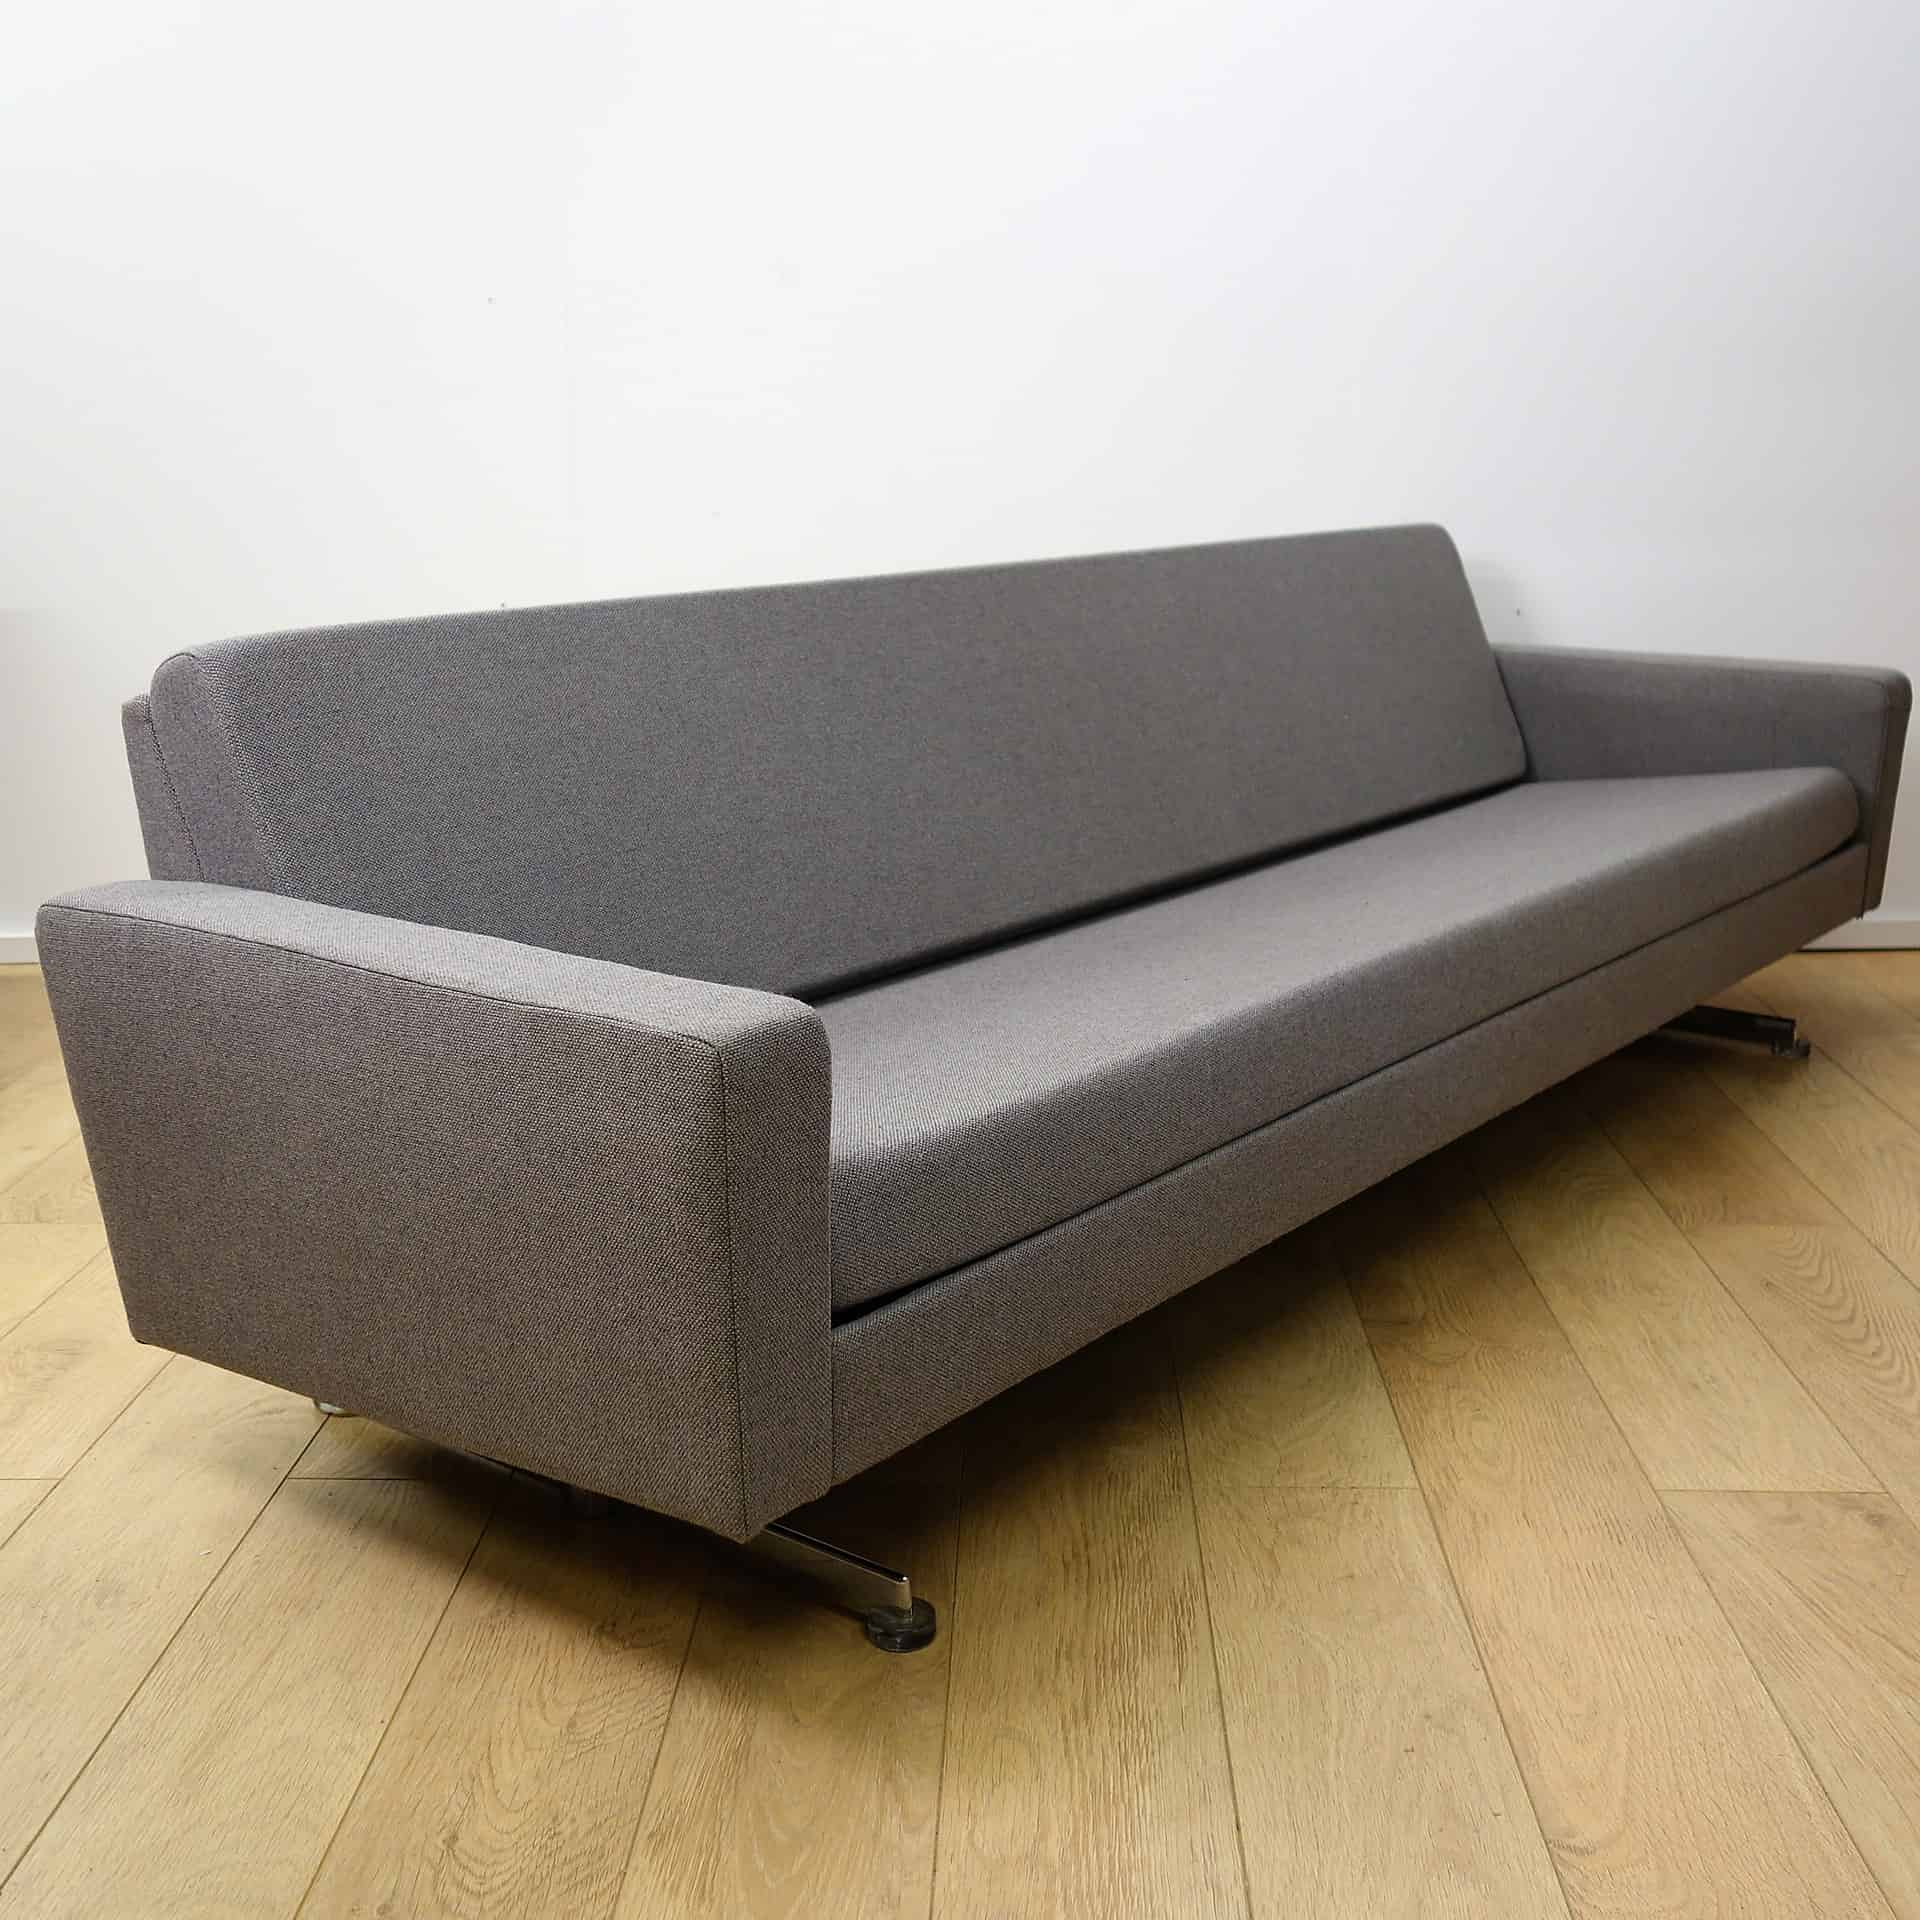 Sofa Deutschland Late 1960s Sofa Bed Made In Germany Mark Parrish Mid